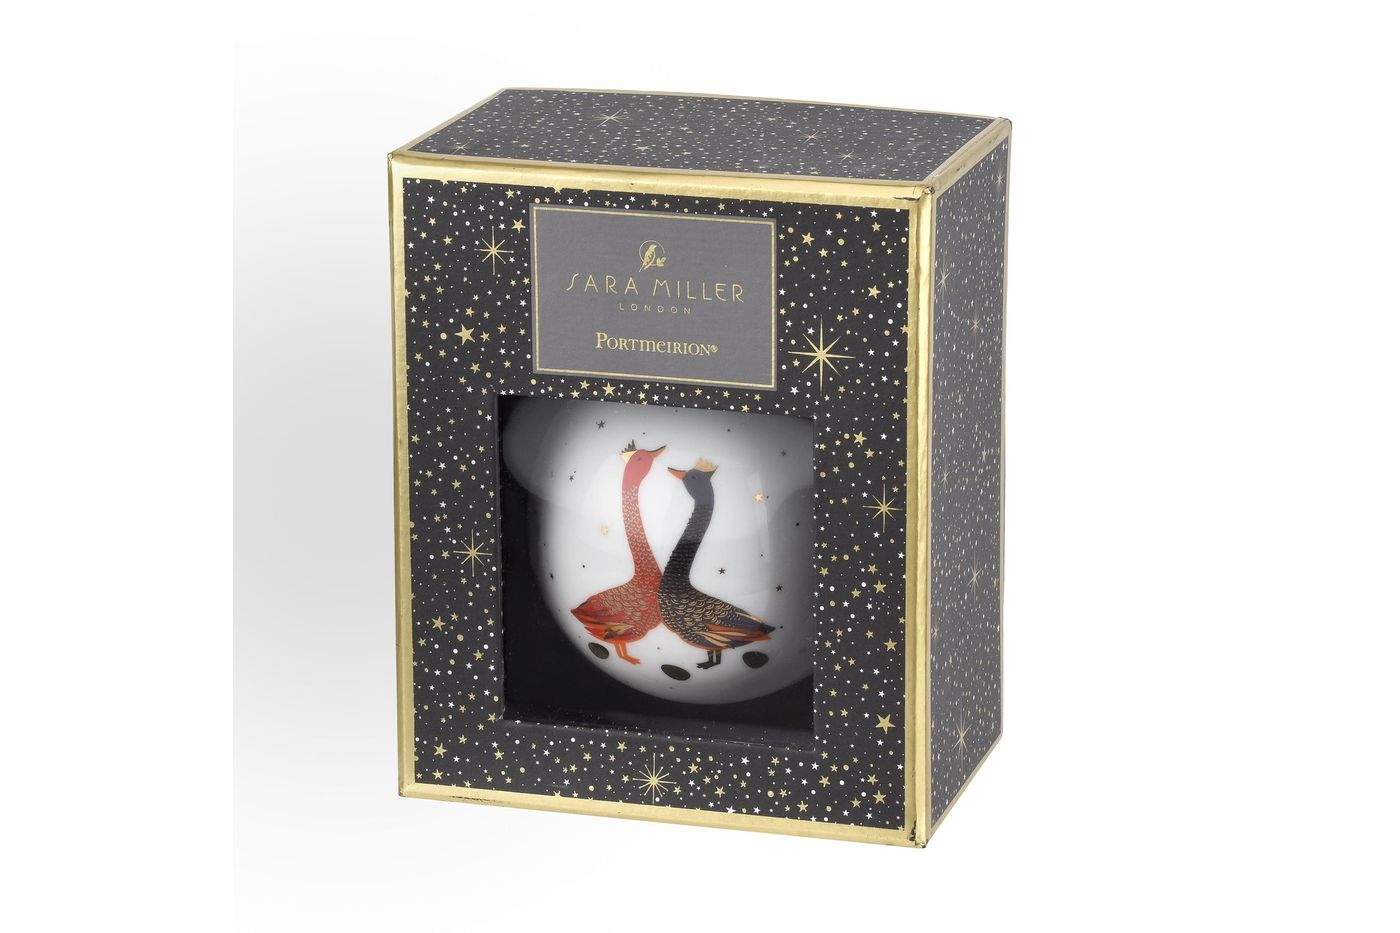 Sara Miller London for Portmeirion Geese Christmas Collection Bauble Red & Blue Geese thumb 2